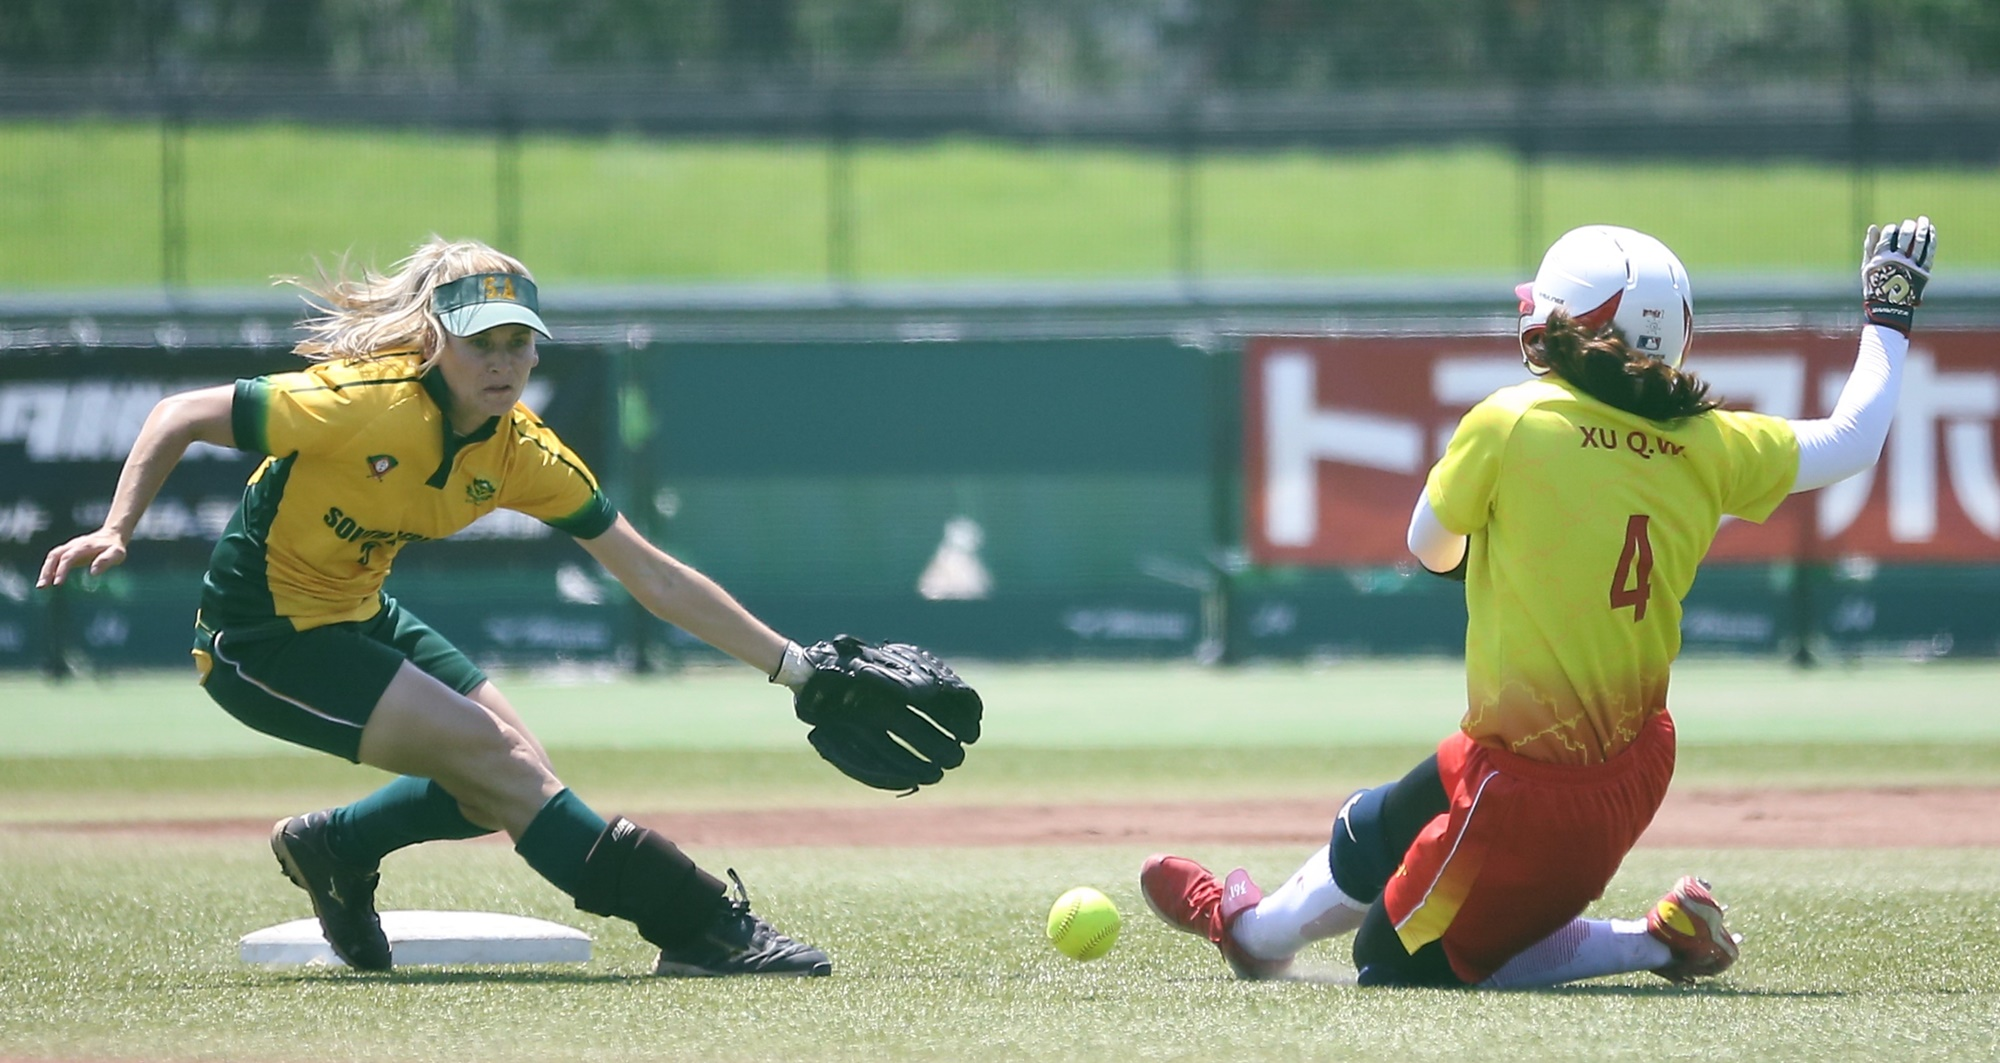 Xu Qianwen slides into secondo for China against South Africa